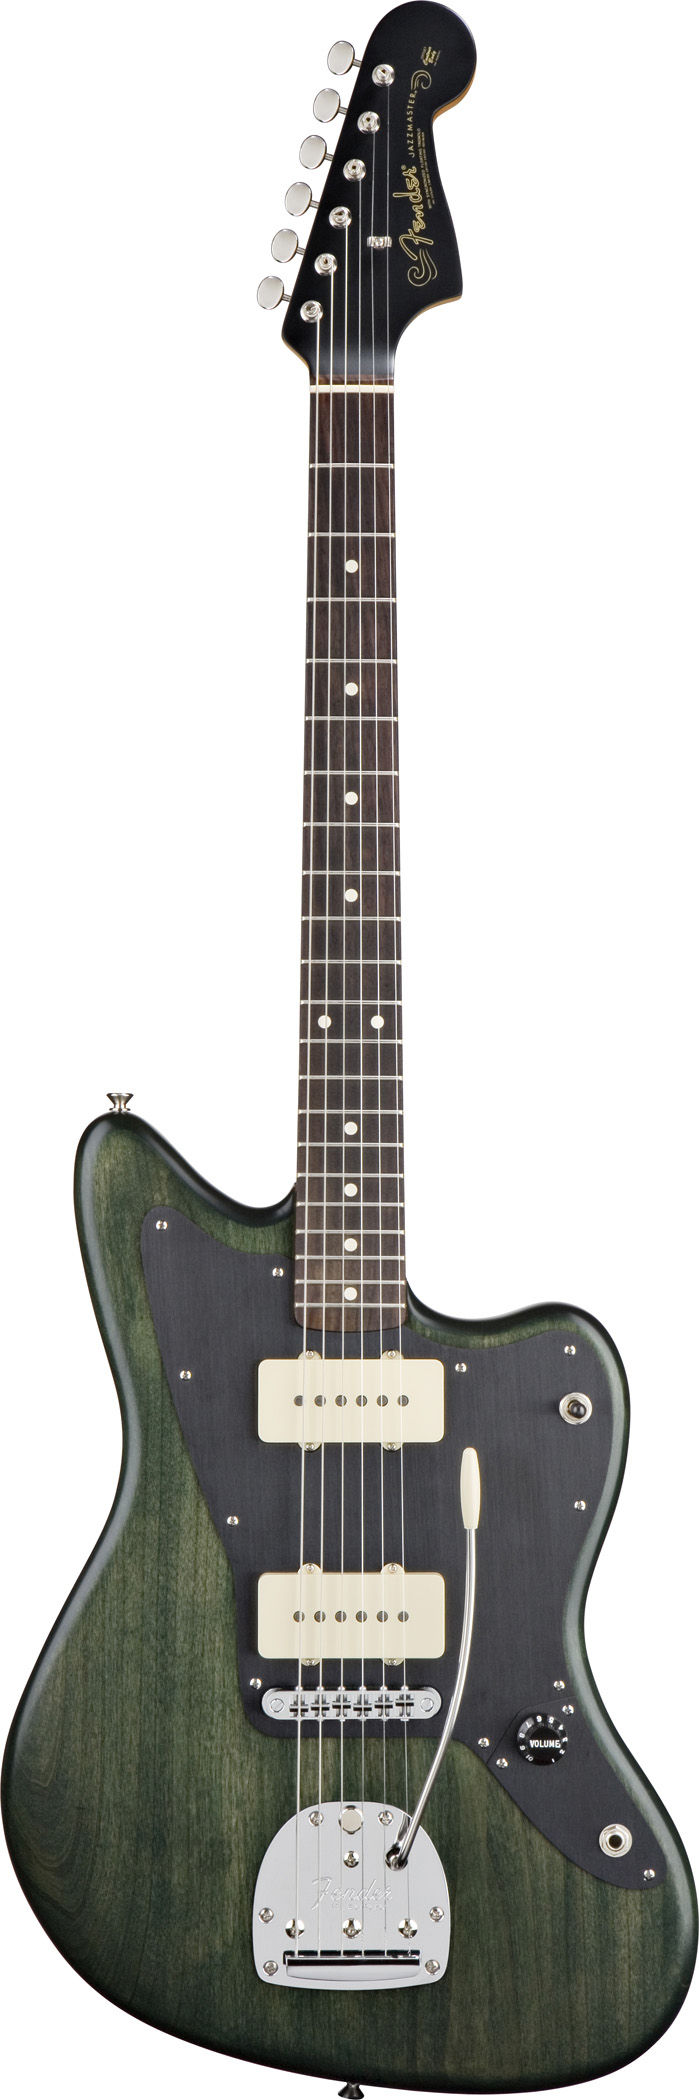 sonic youth gear guide fender jazzmaster thurston moore signature. Black Bedroom Furniture Sets. Home Design Ideas